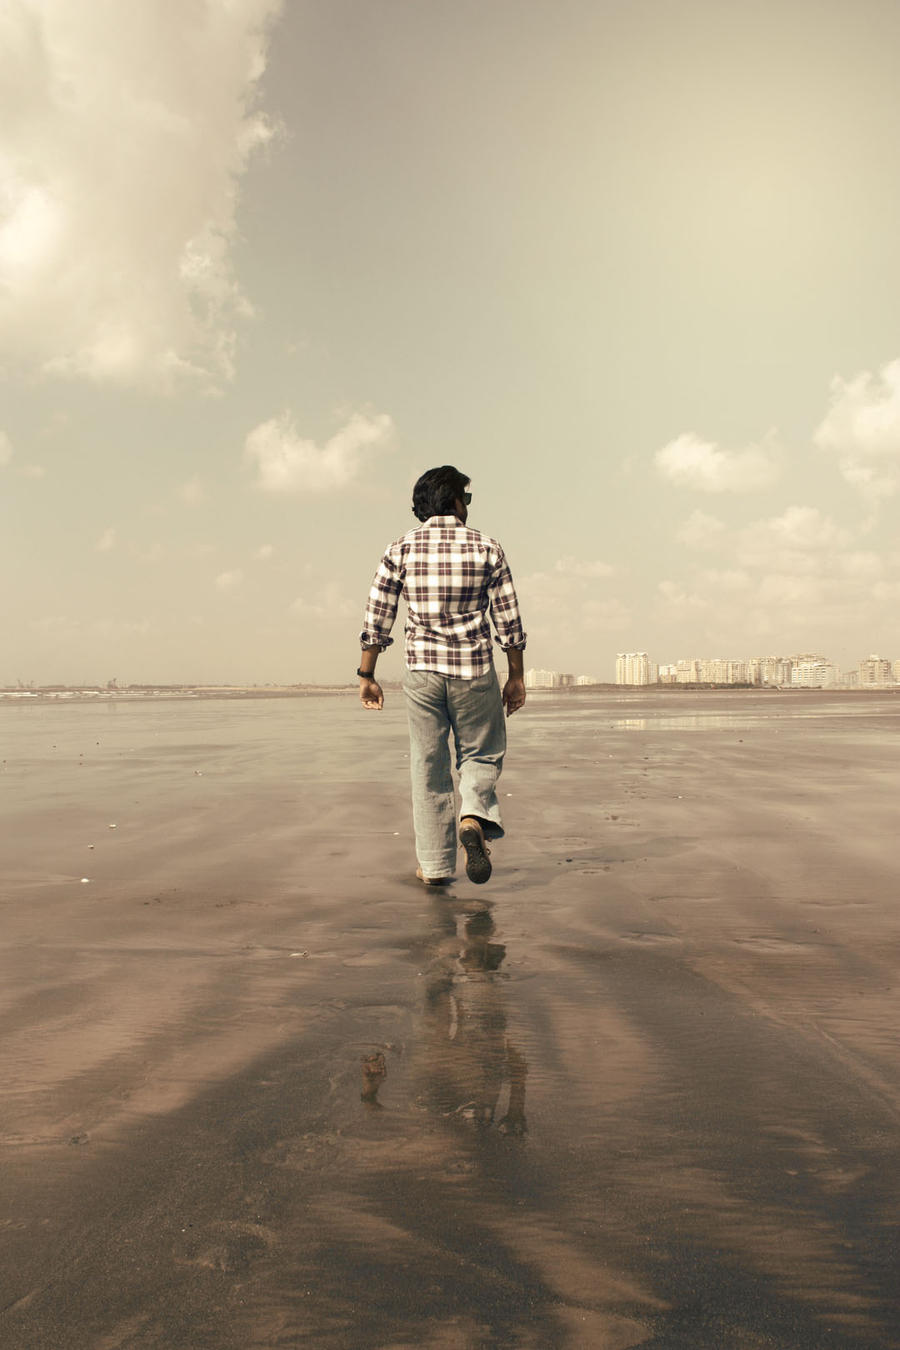 Walking away #2 by photoholic2 on DeviantArt